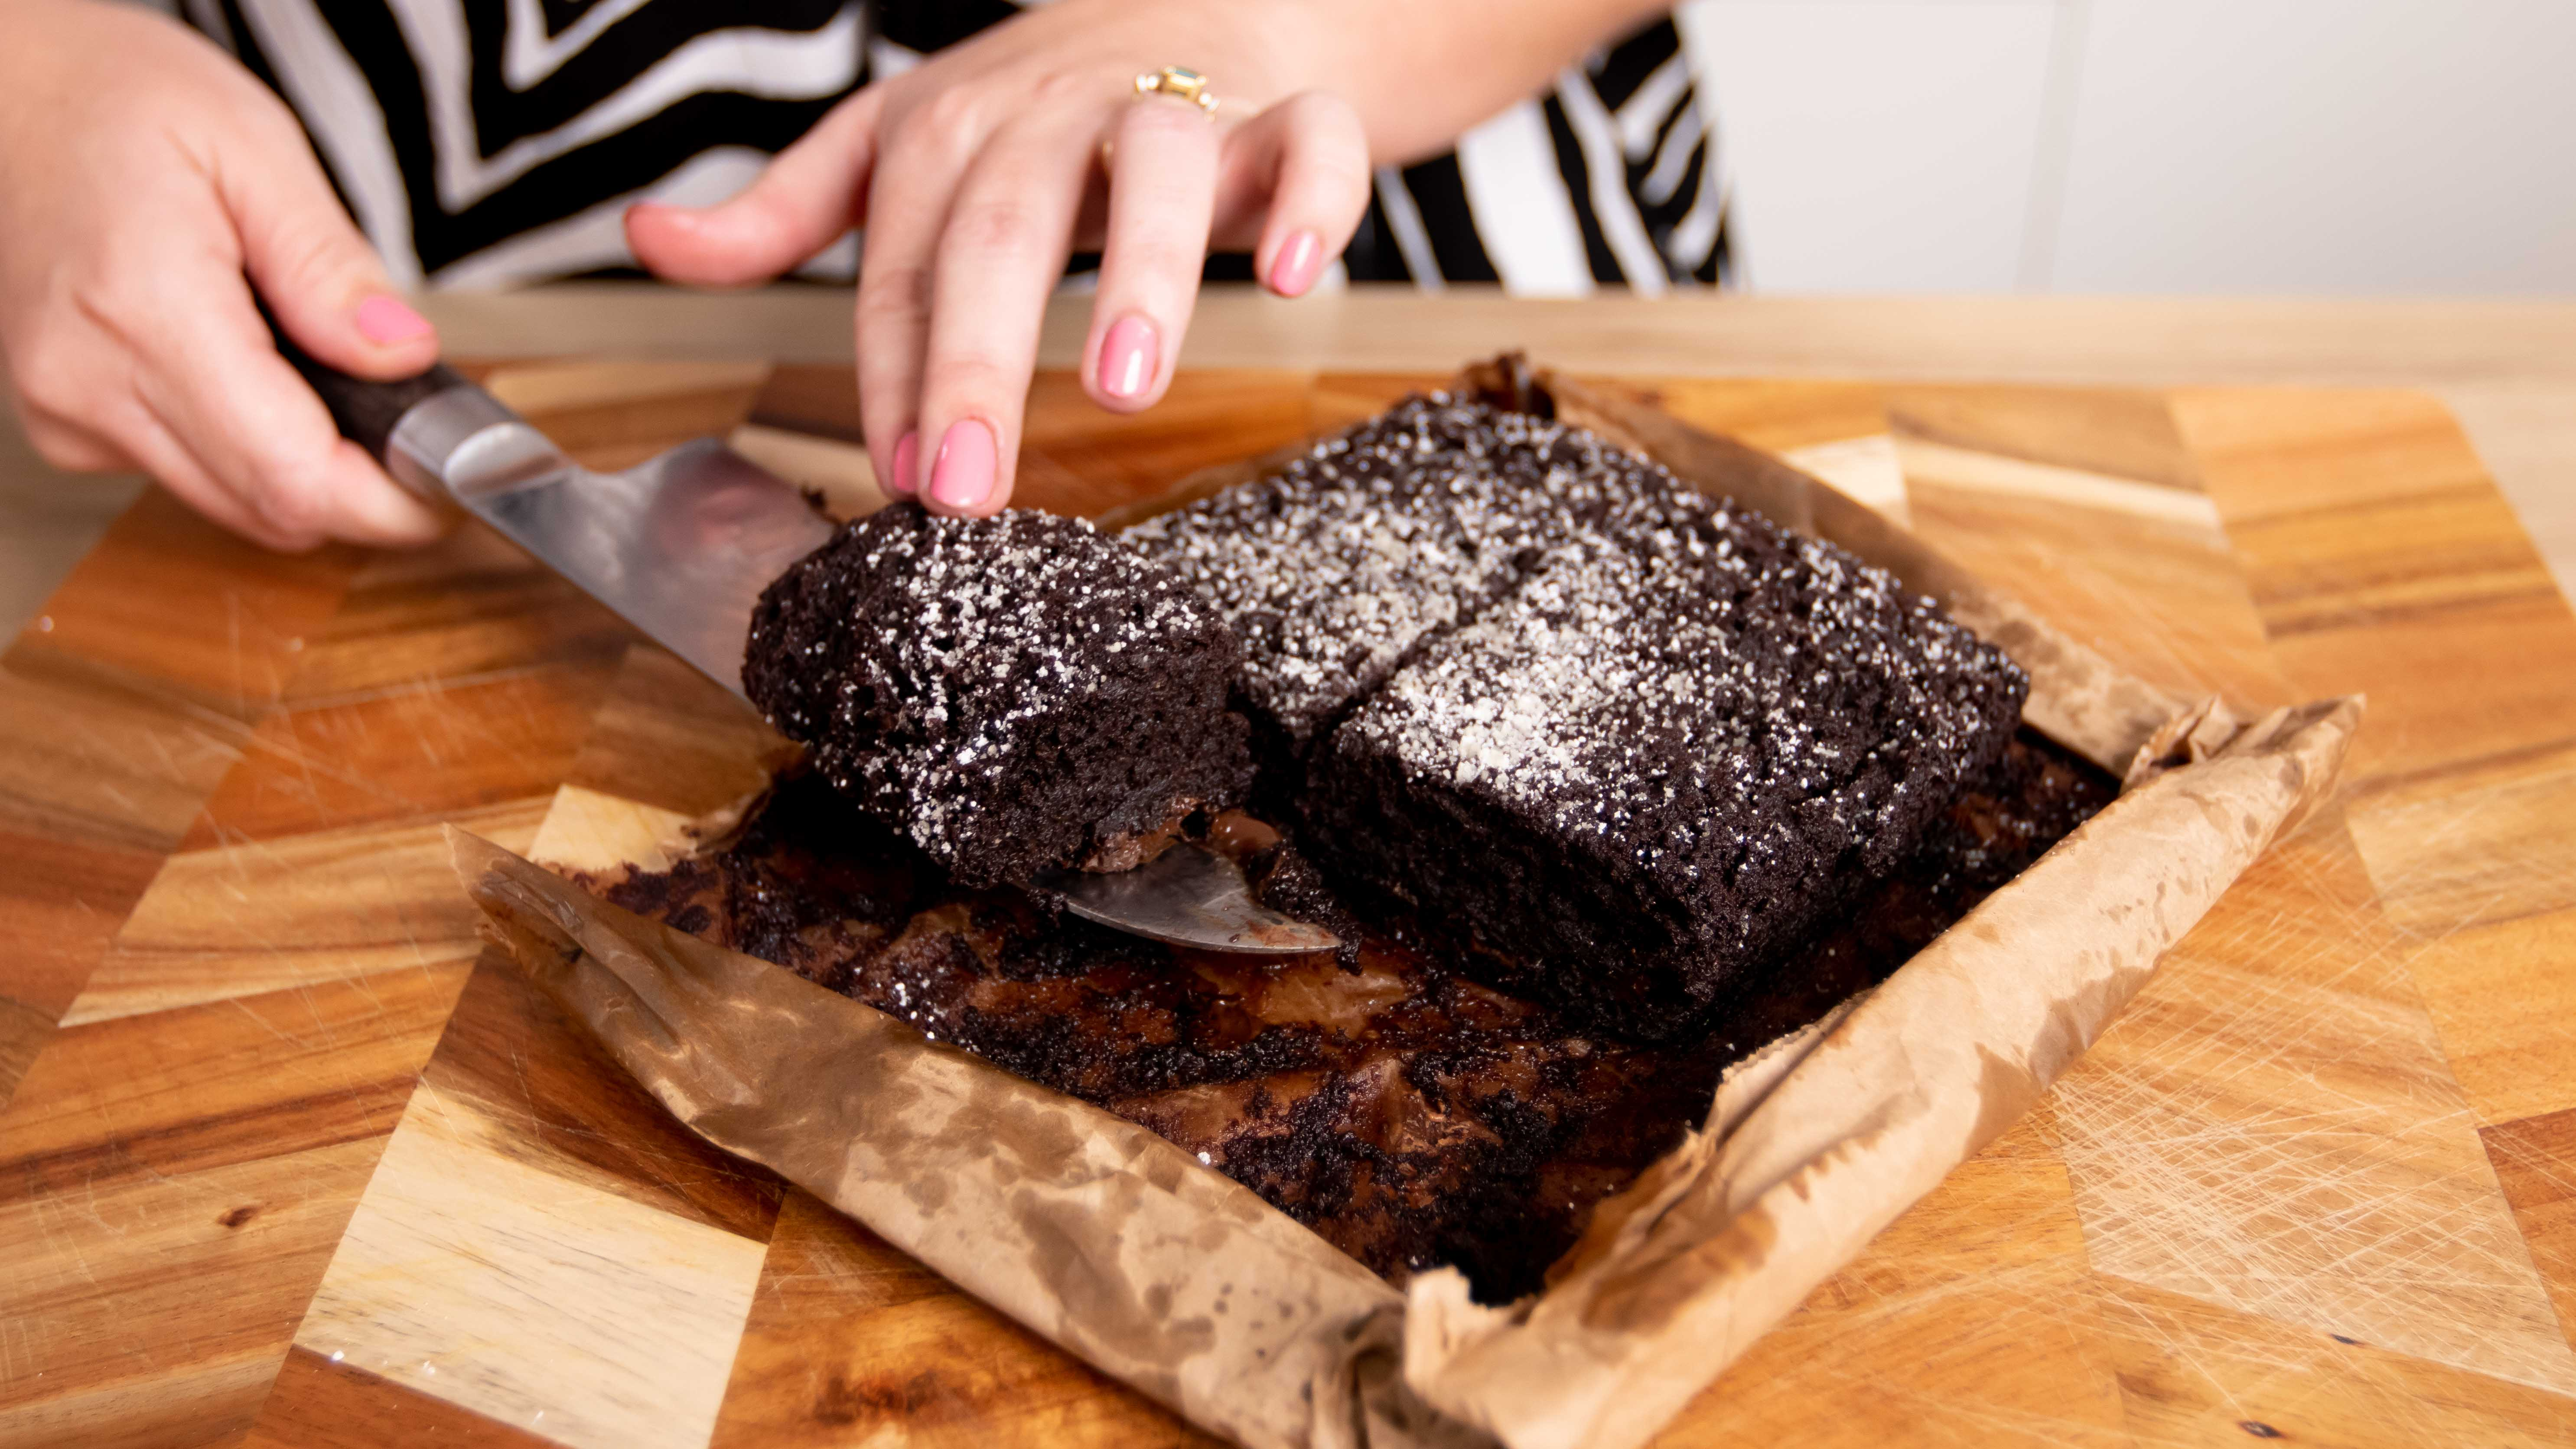 Yes, the microwave brownie cooked in a paper bag works